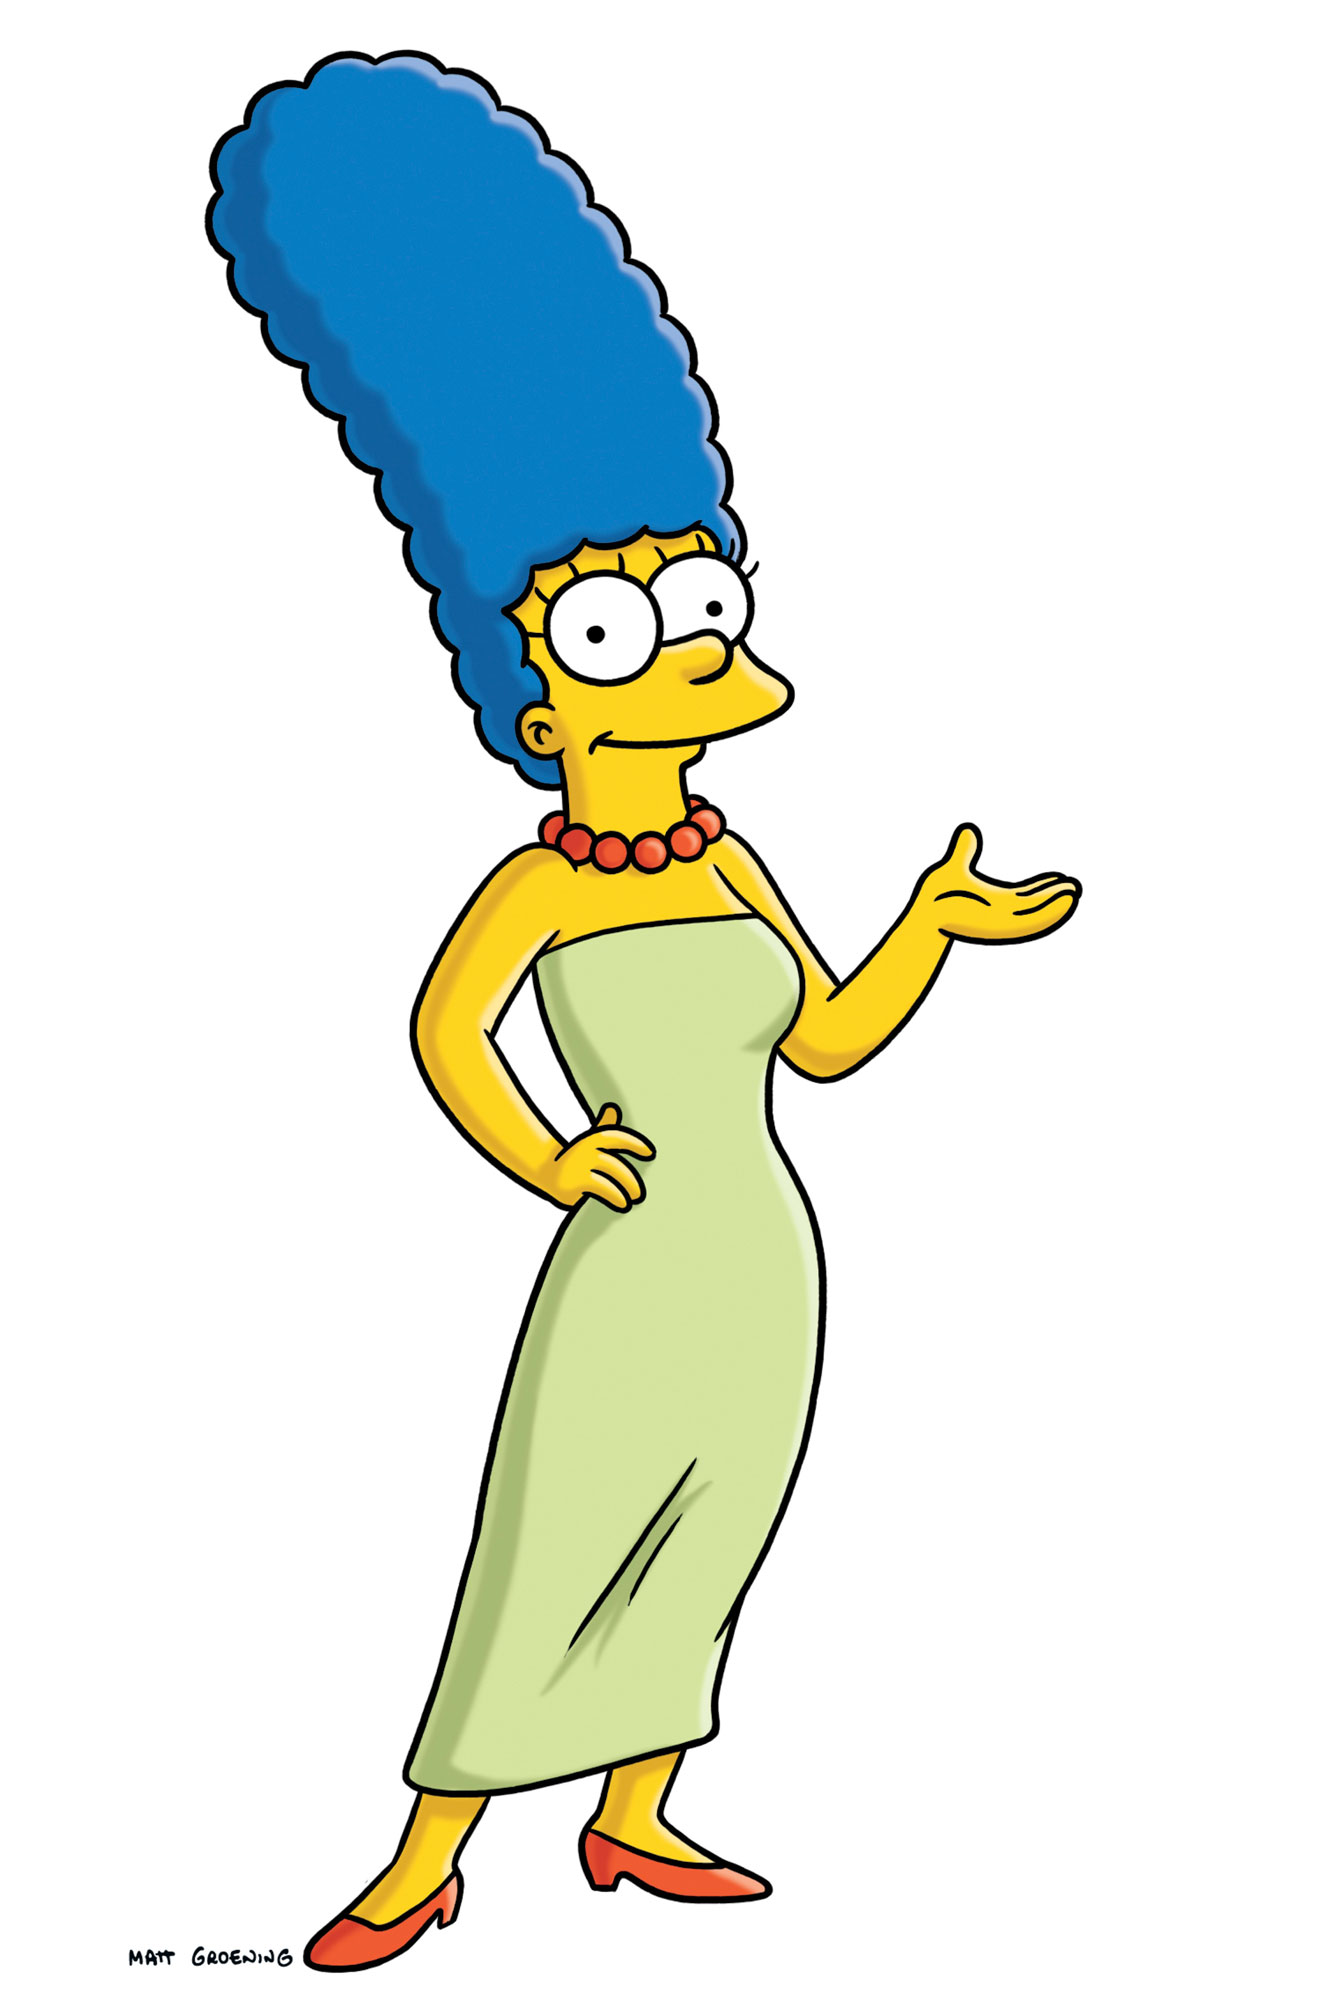 marge-simpson-1-2000